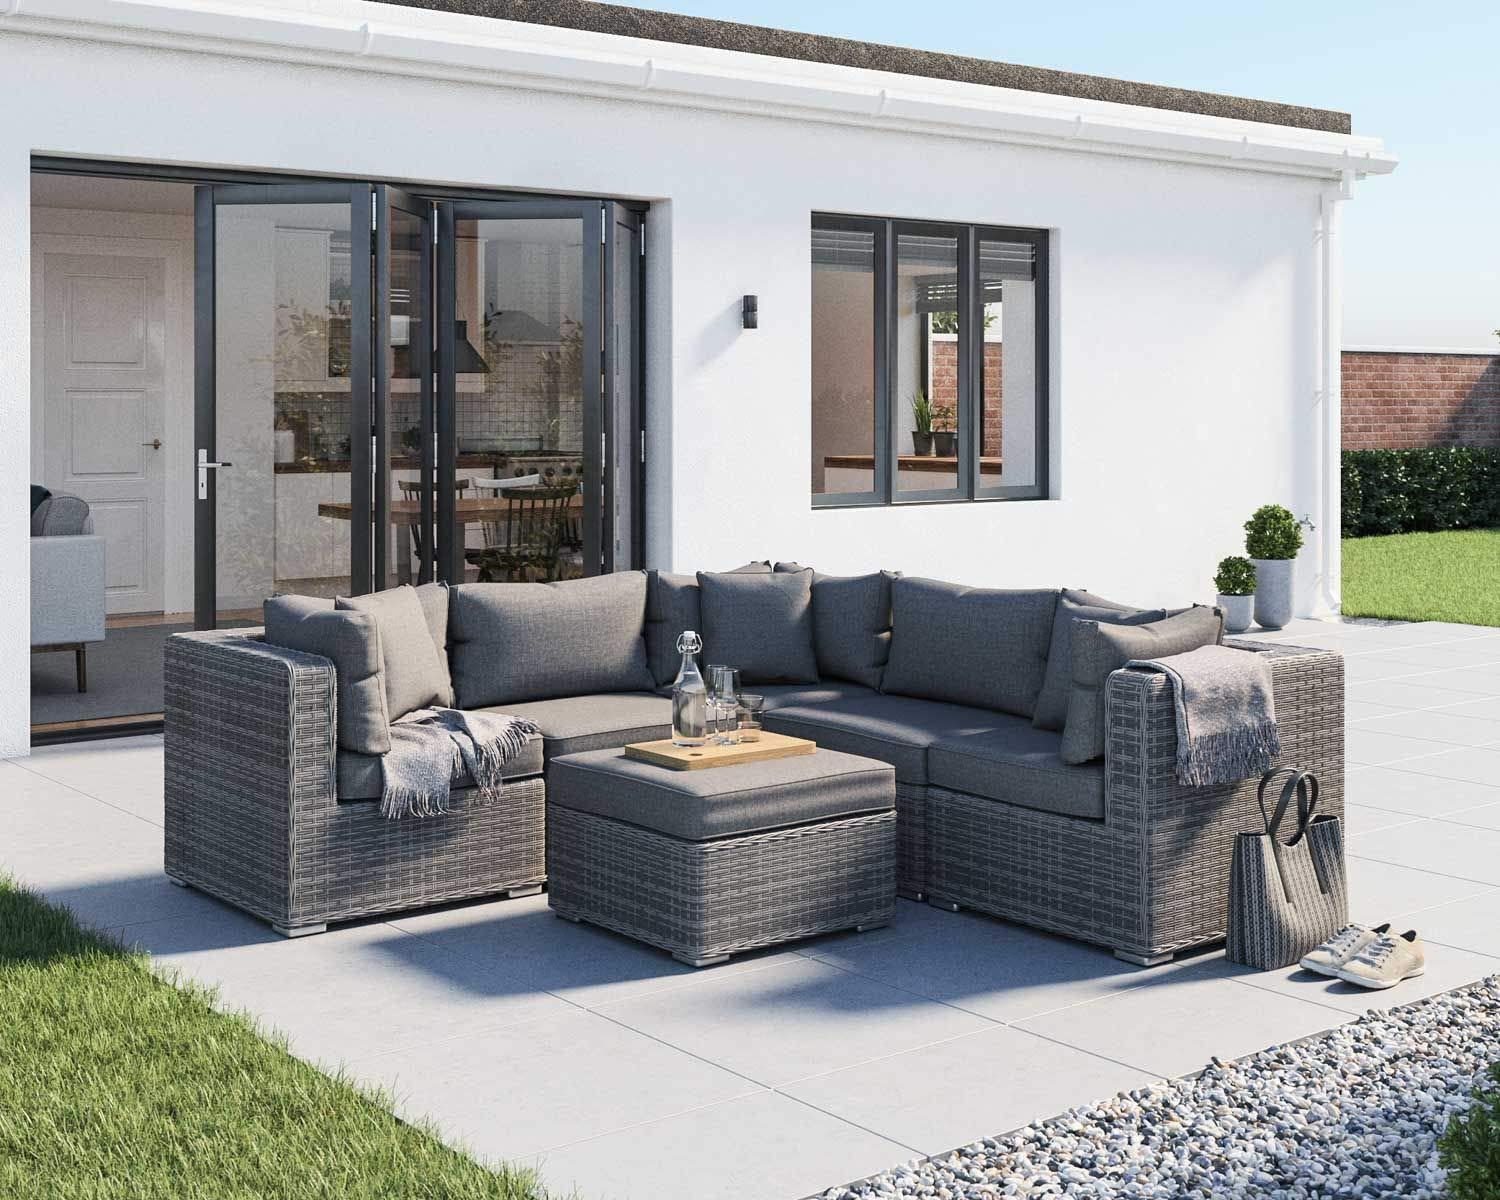 Outdoor Conversation Sets Rattan Patio Furniture Clearance No Assembly  Wicker Ottoman Aluminum Outside Sectional Couch Sofa Patio Seating 11pcs